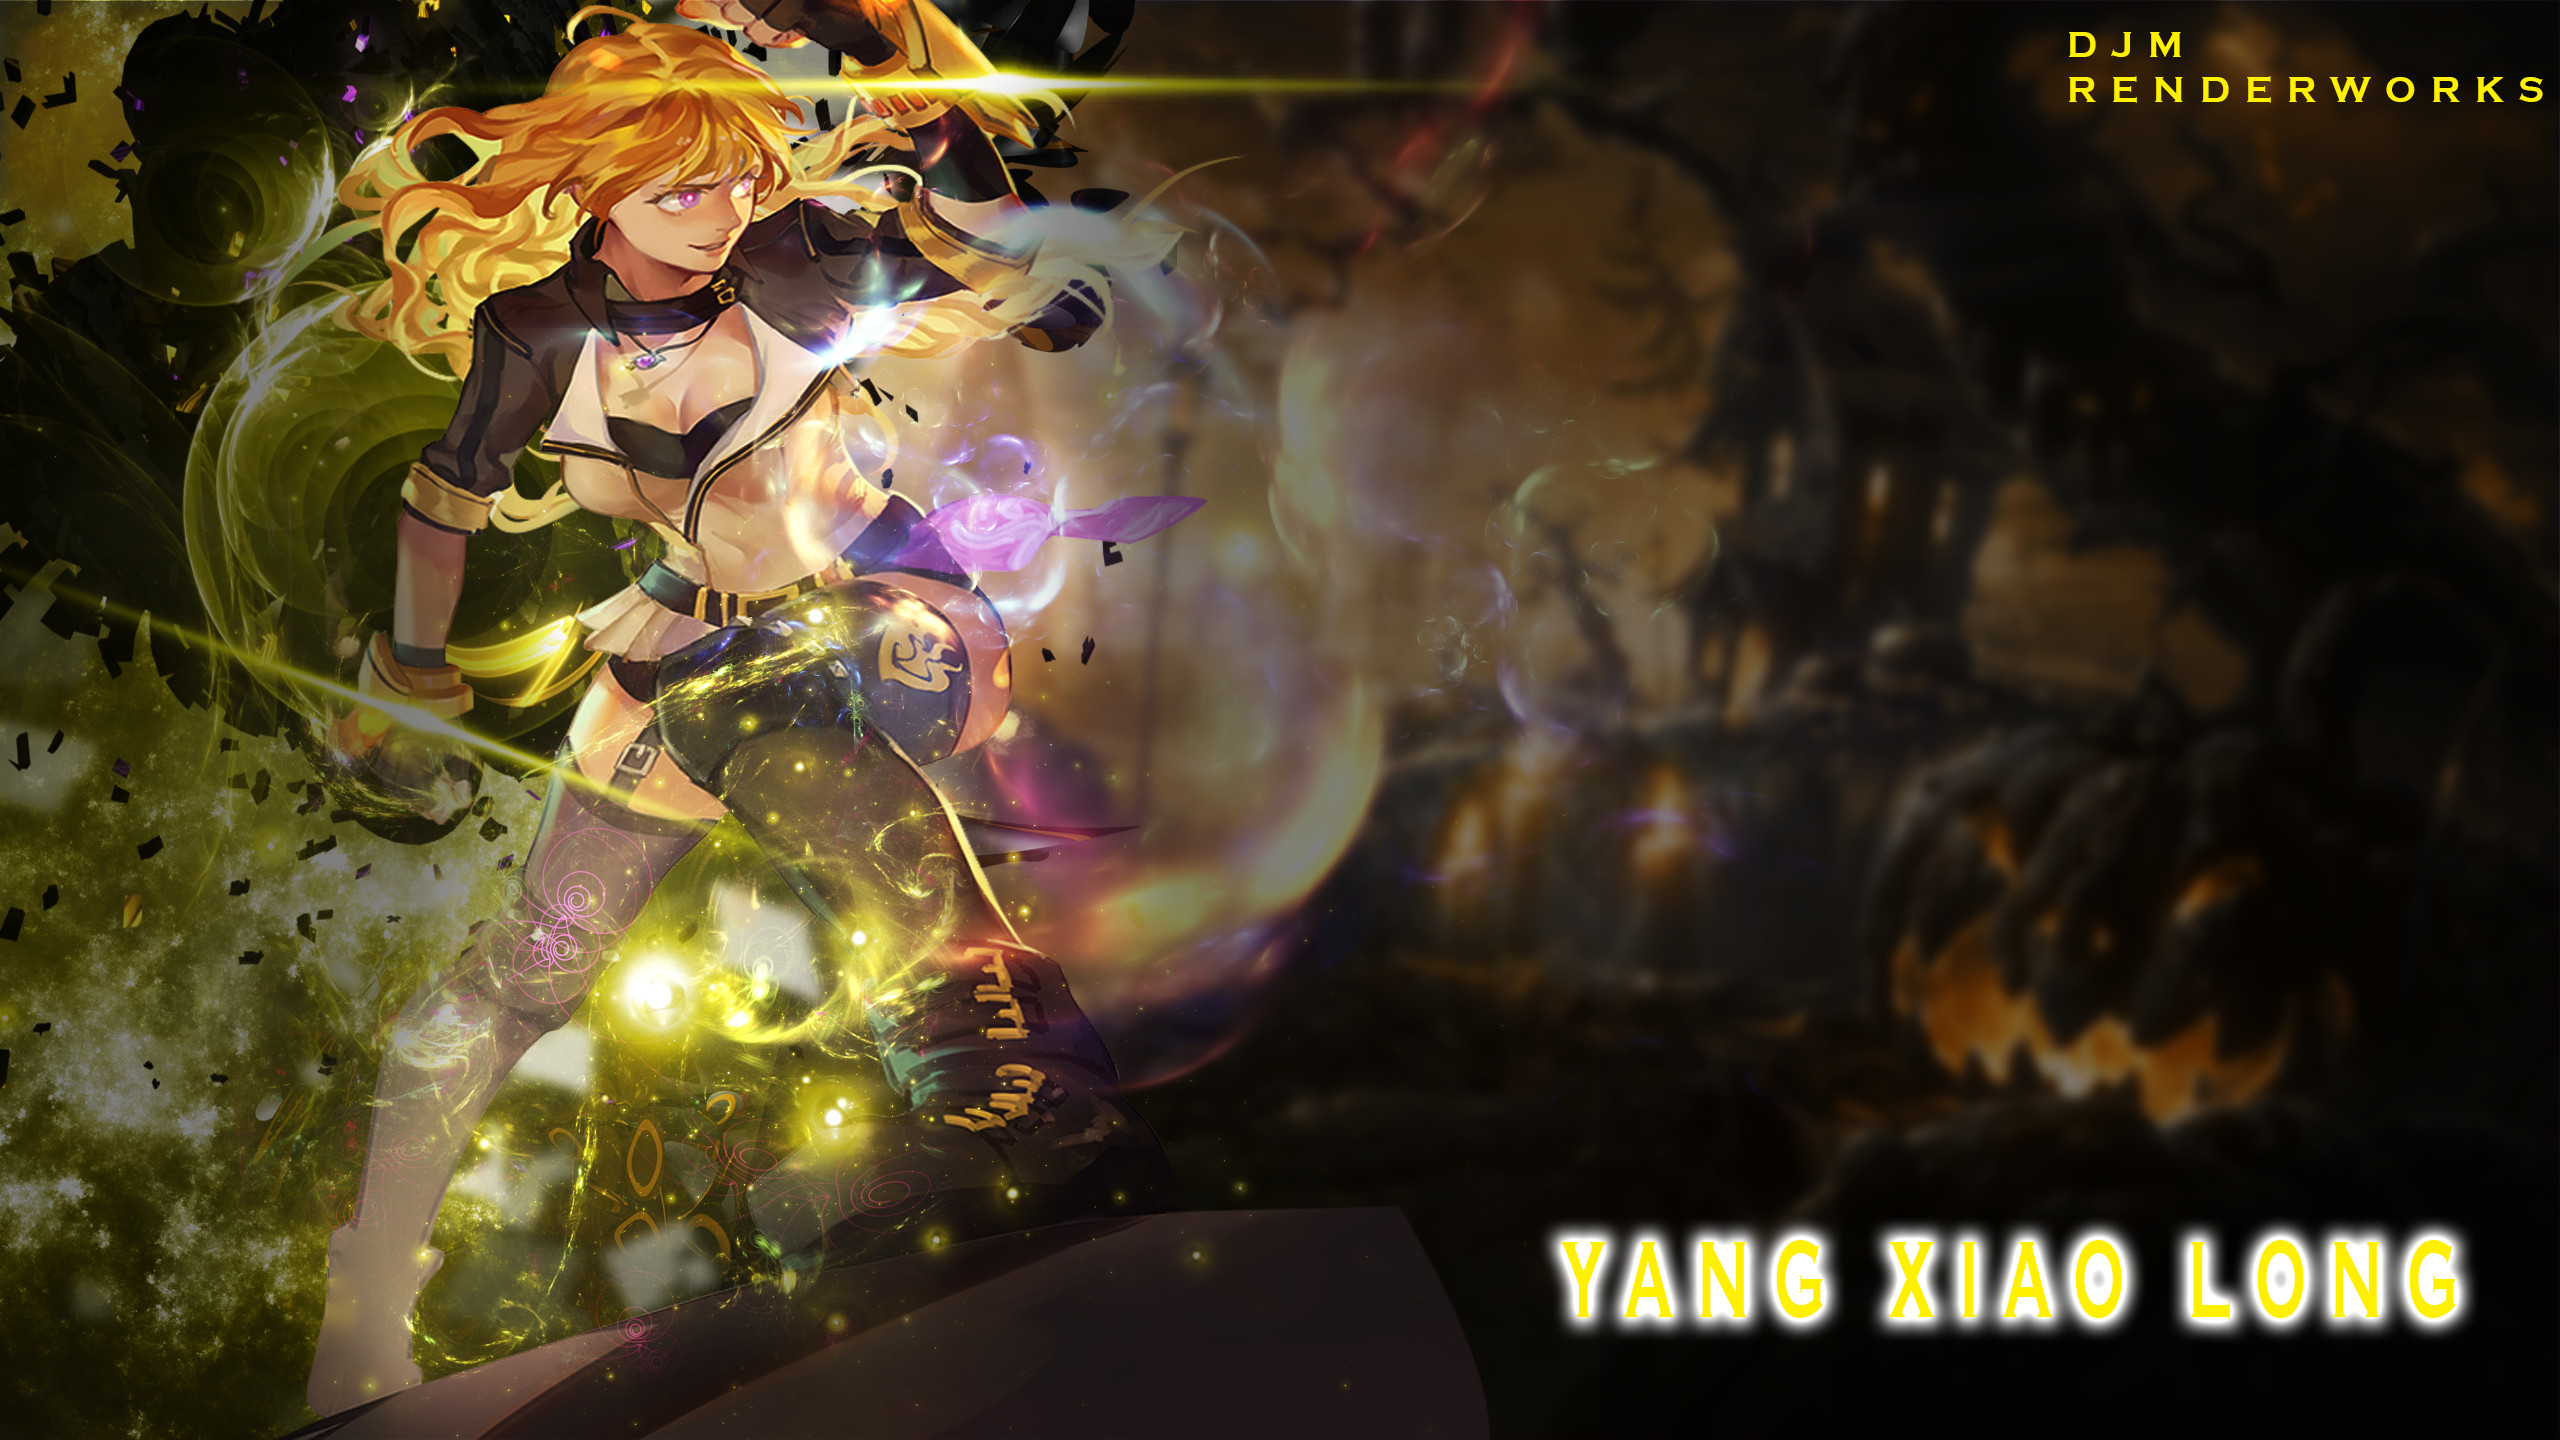 Res: 2560x1440, C4D Wallpaper] Yang Xiao long -RWBY- by MekakuActors on DeviantArt